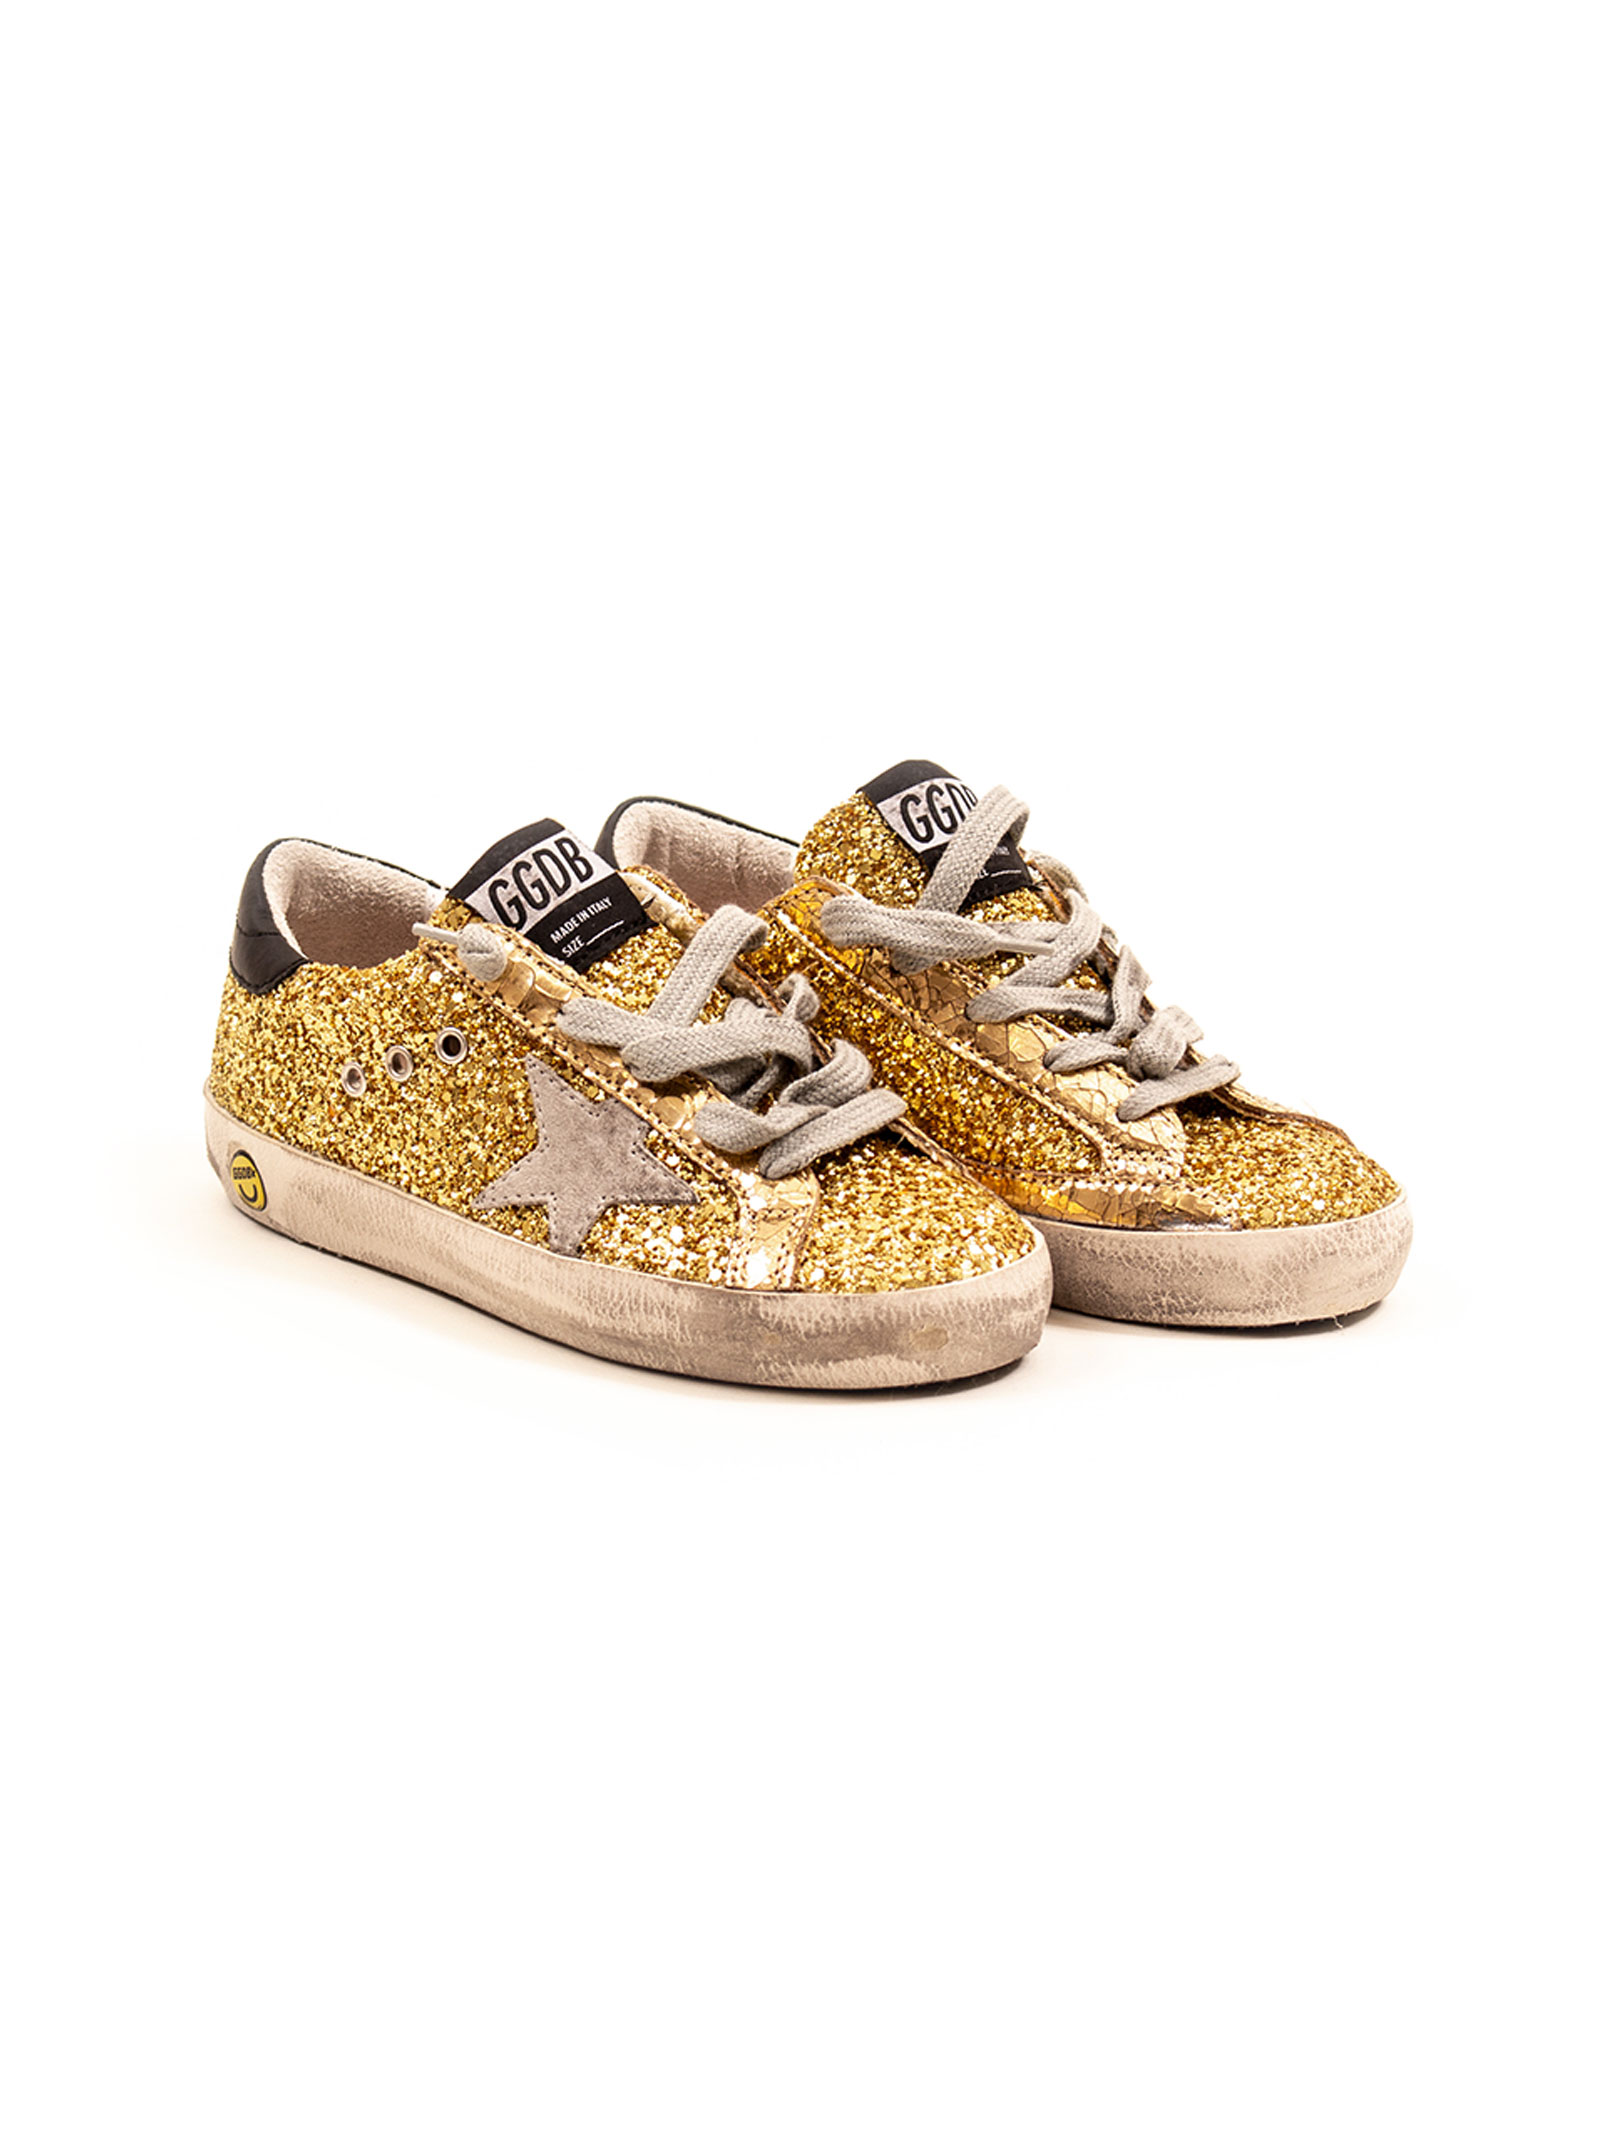 buy popular e1bfb db407 Sneakers bambina superstar glitter